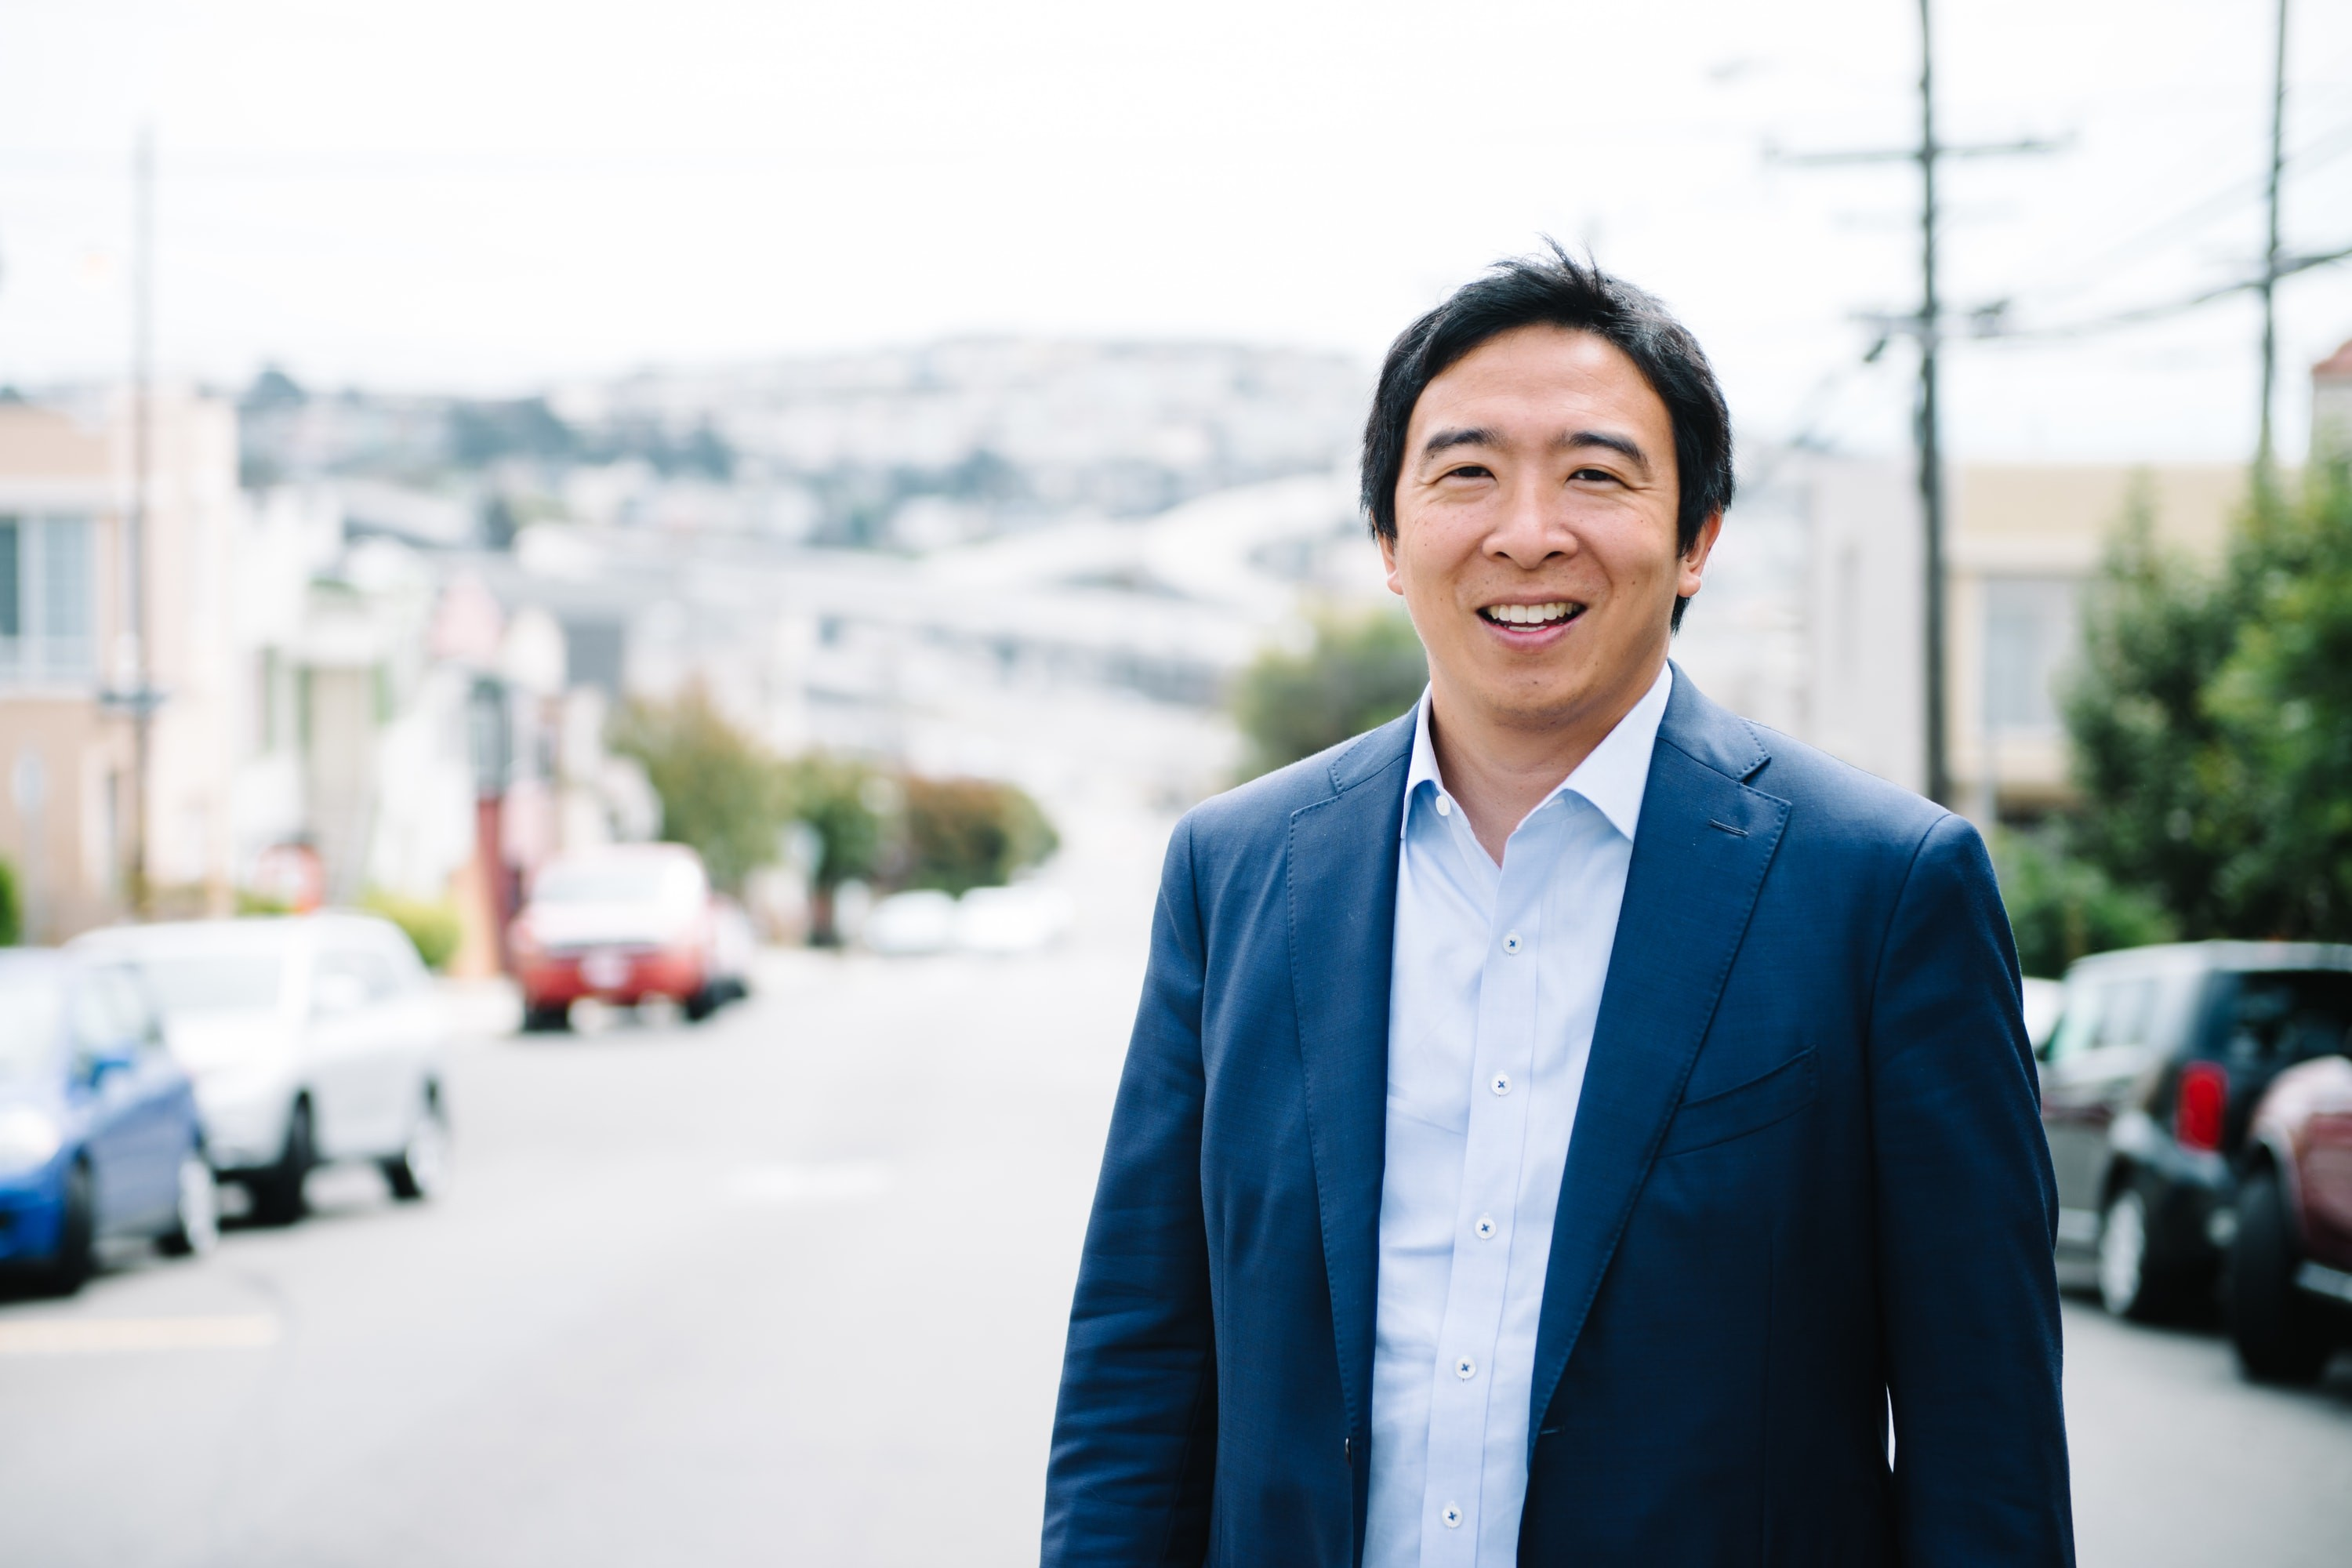 Presidential hopeful Andrew Yang wants to give voters $1,000 a month